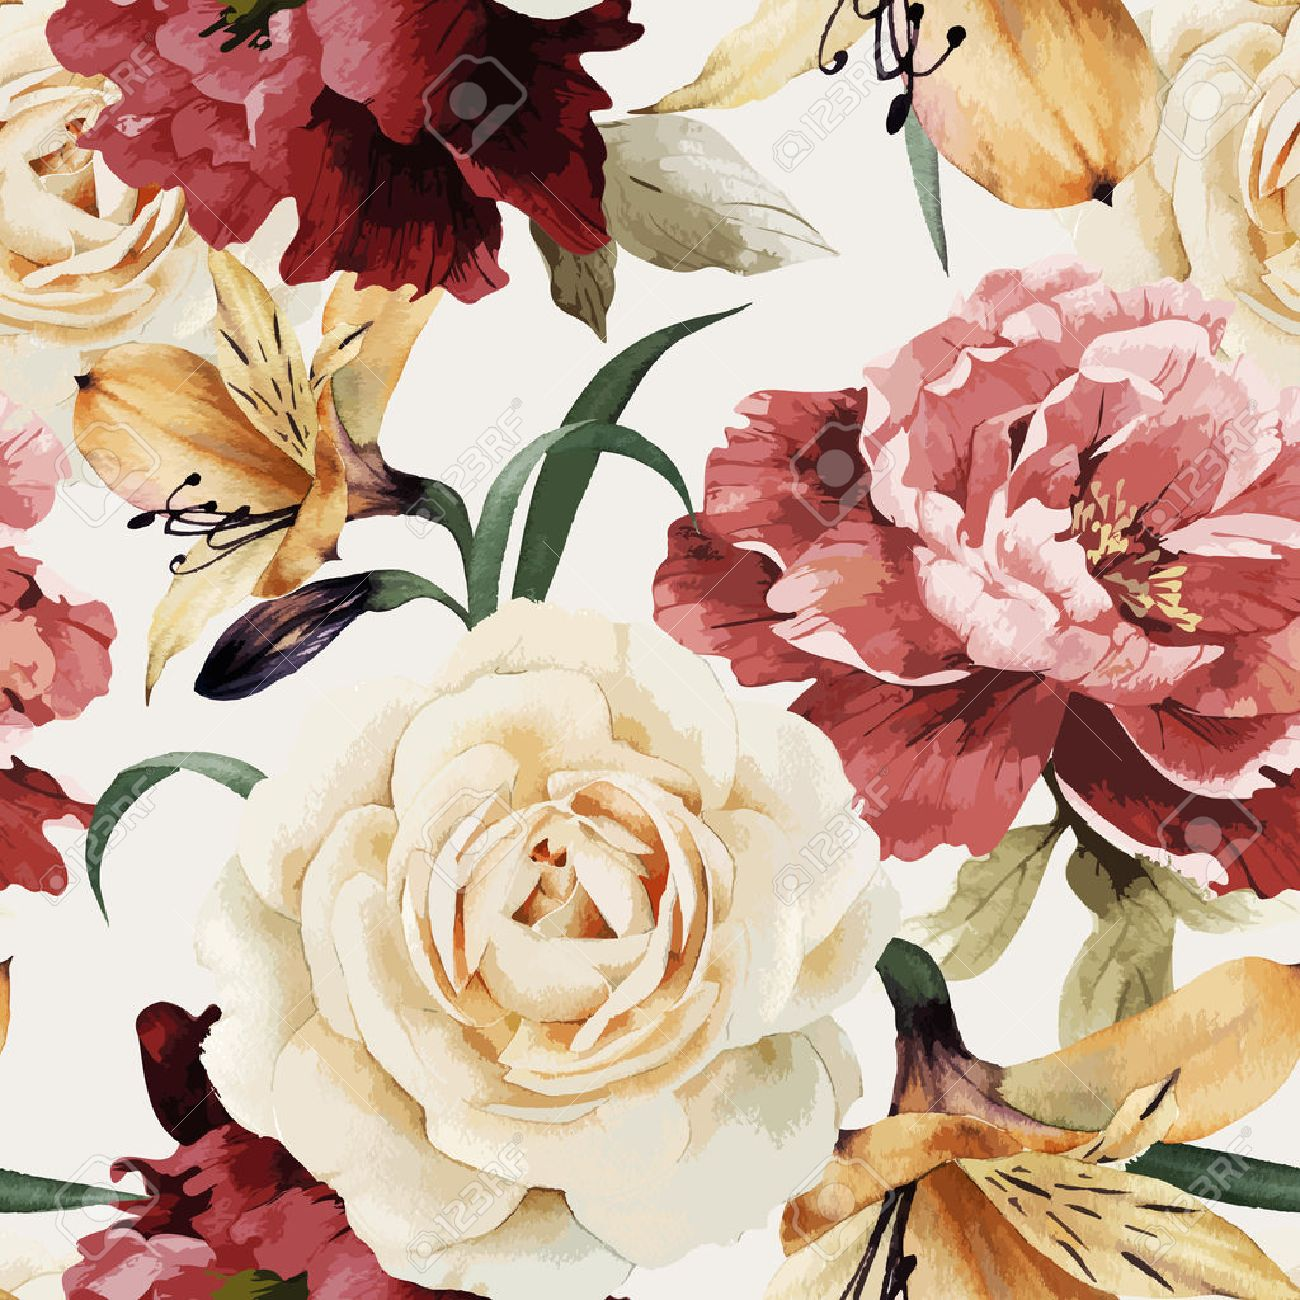 Seamless floral pattern with roses, watercolor. Vector illustration. - 42138591